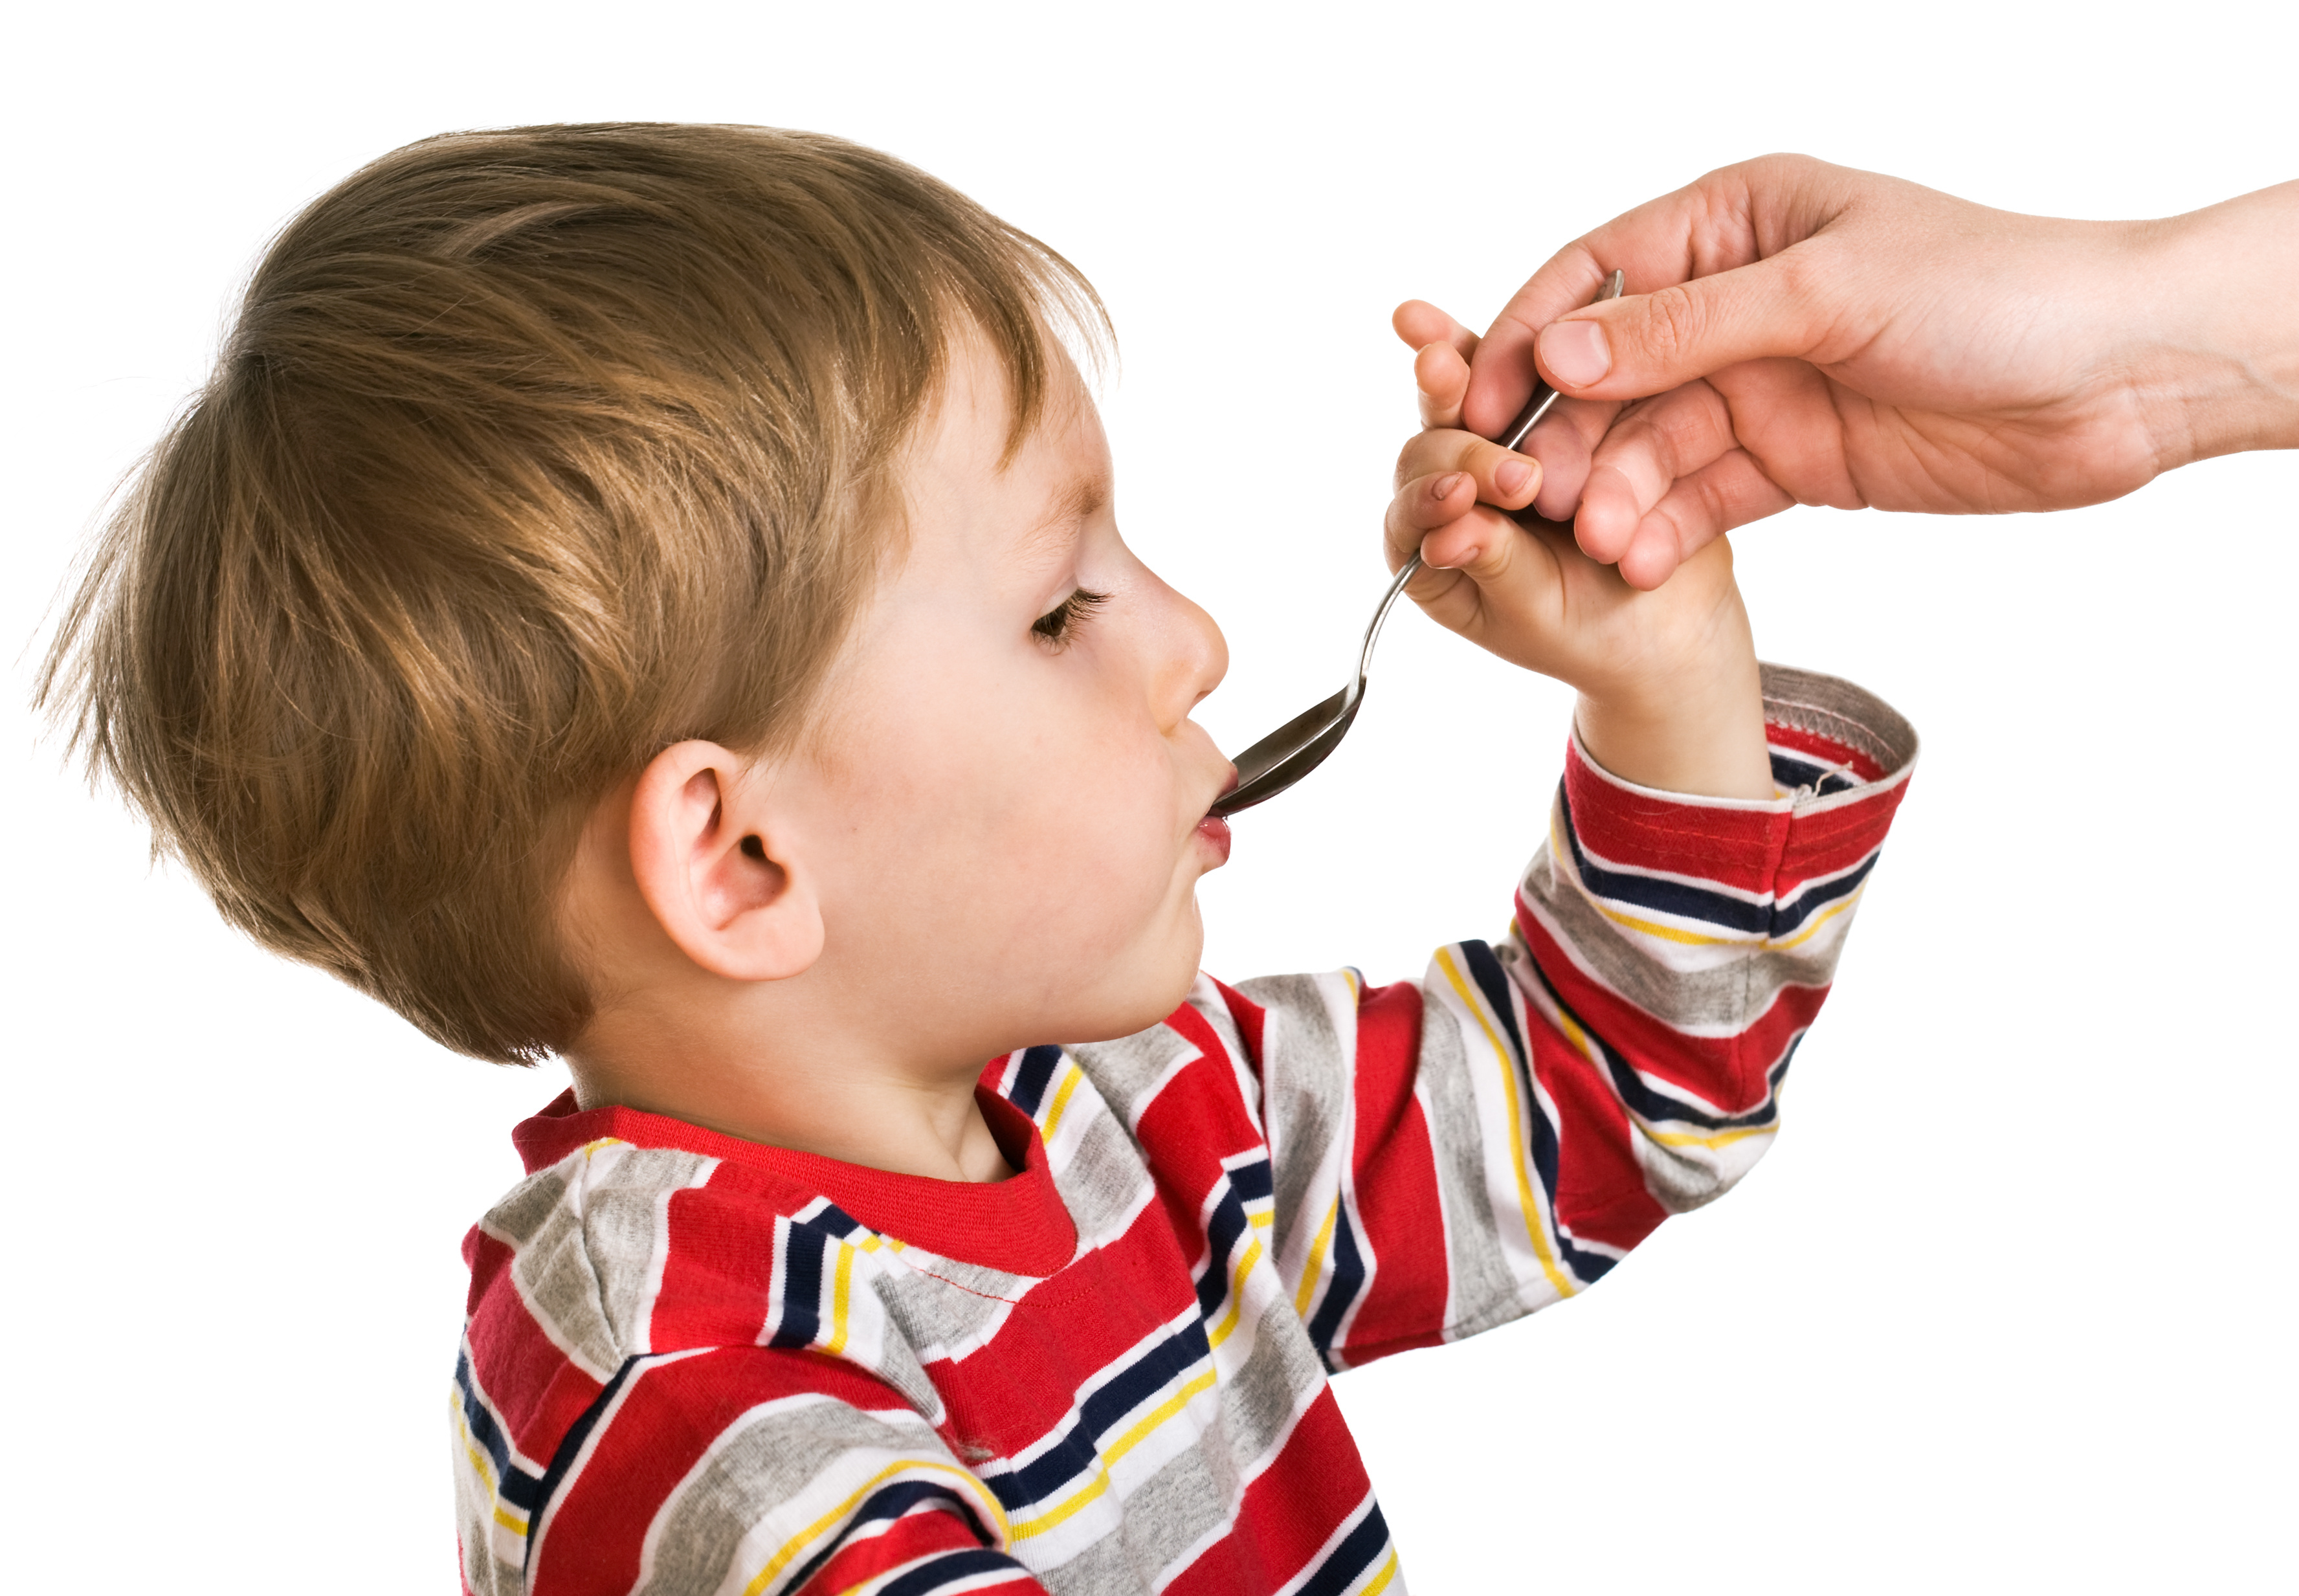 Child Accepting Medication